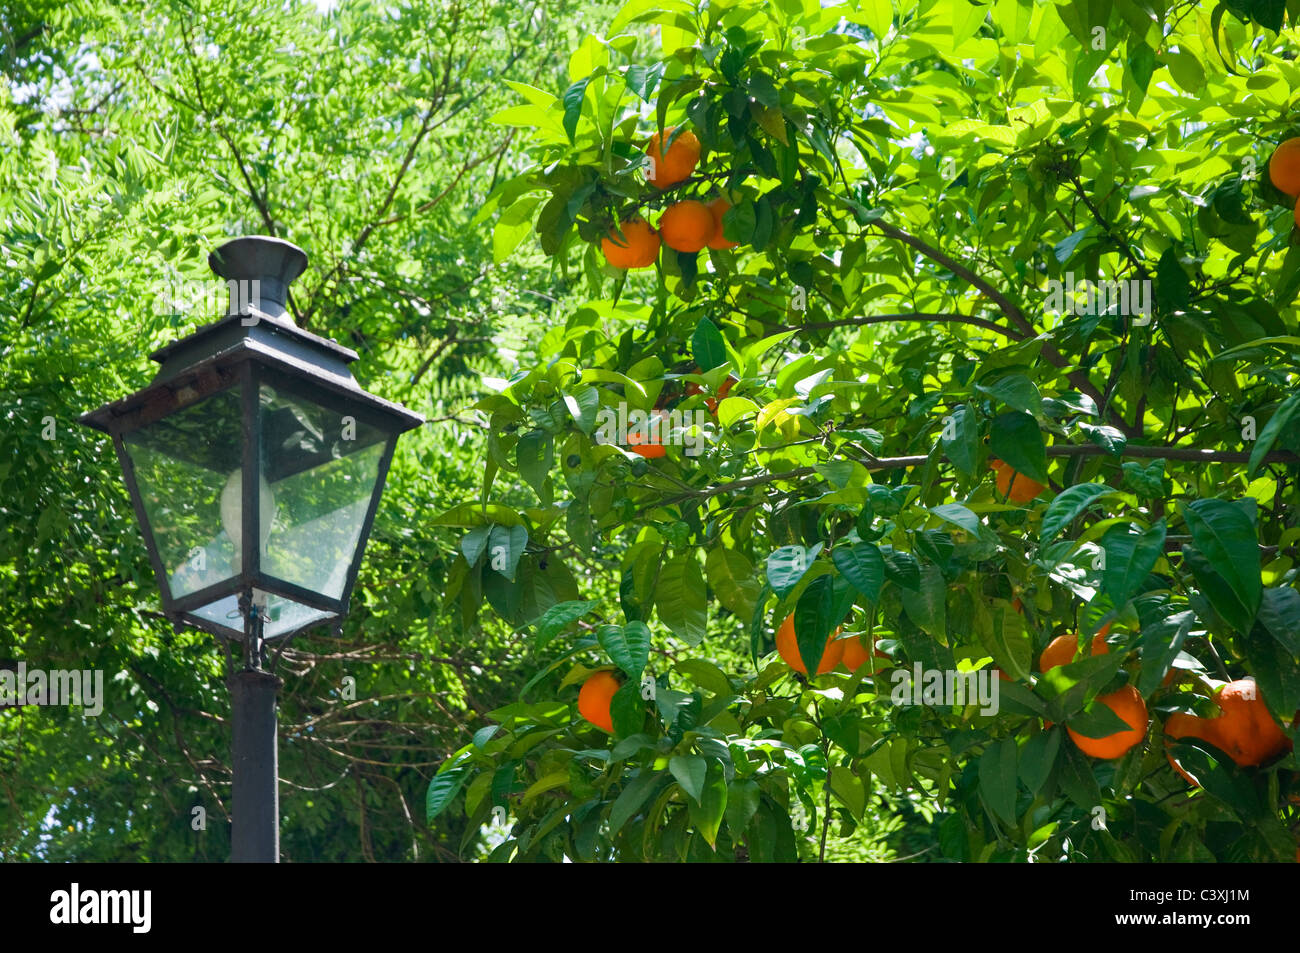 Detail of orange trees and a lamp post in Seville, Spain - Stock Image